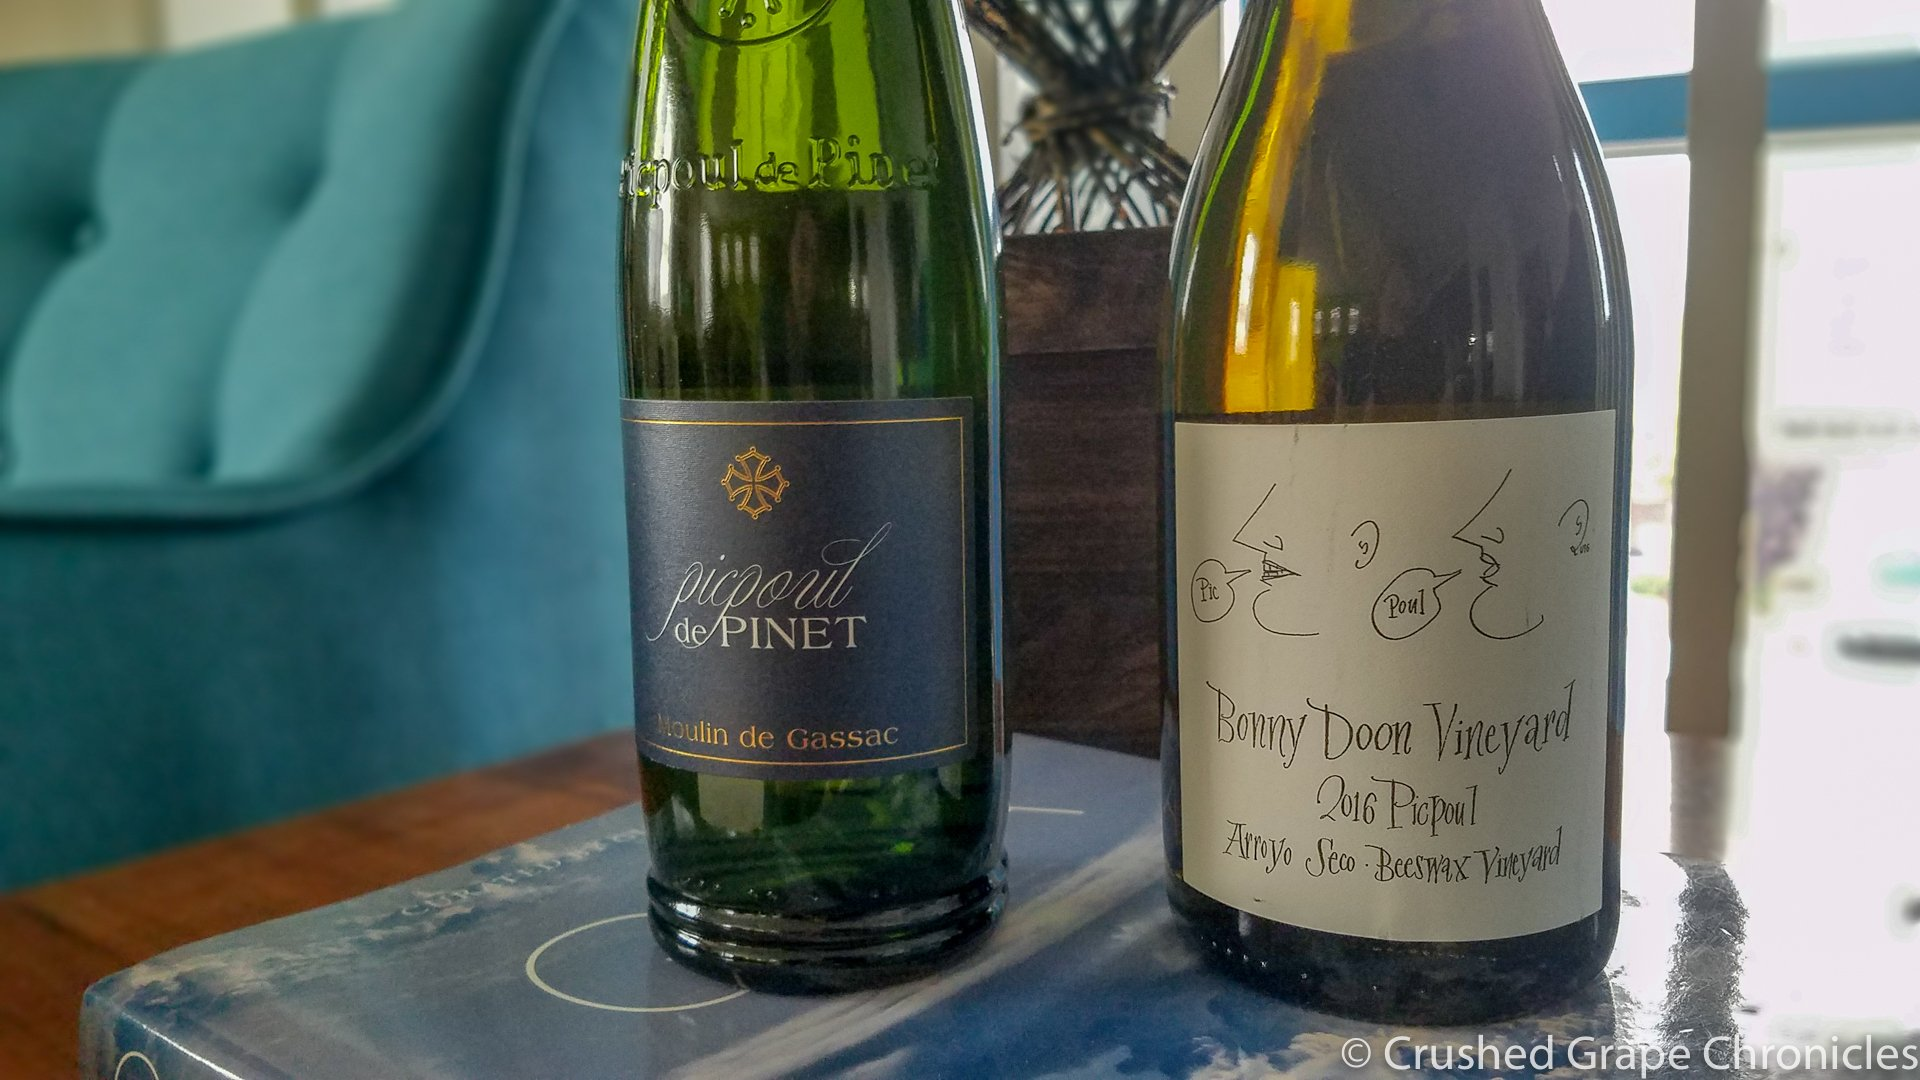 Picpoul de Pinet and Bonny Doon Vineyard Picpoul